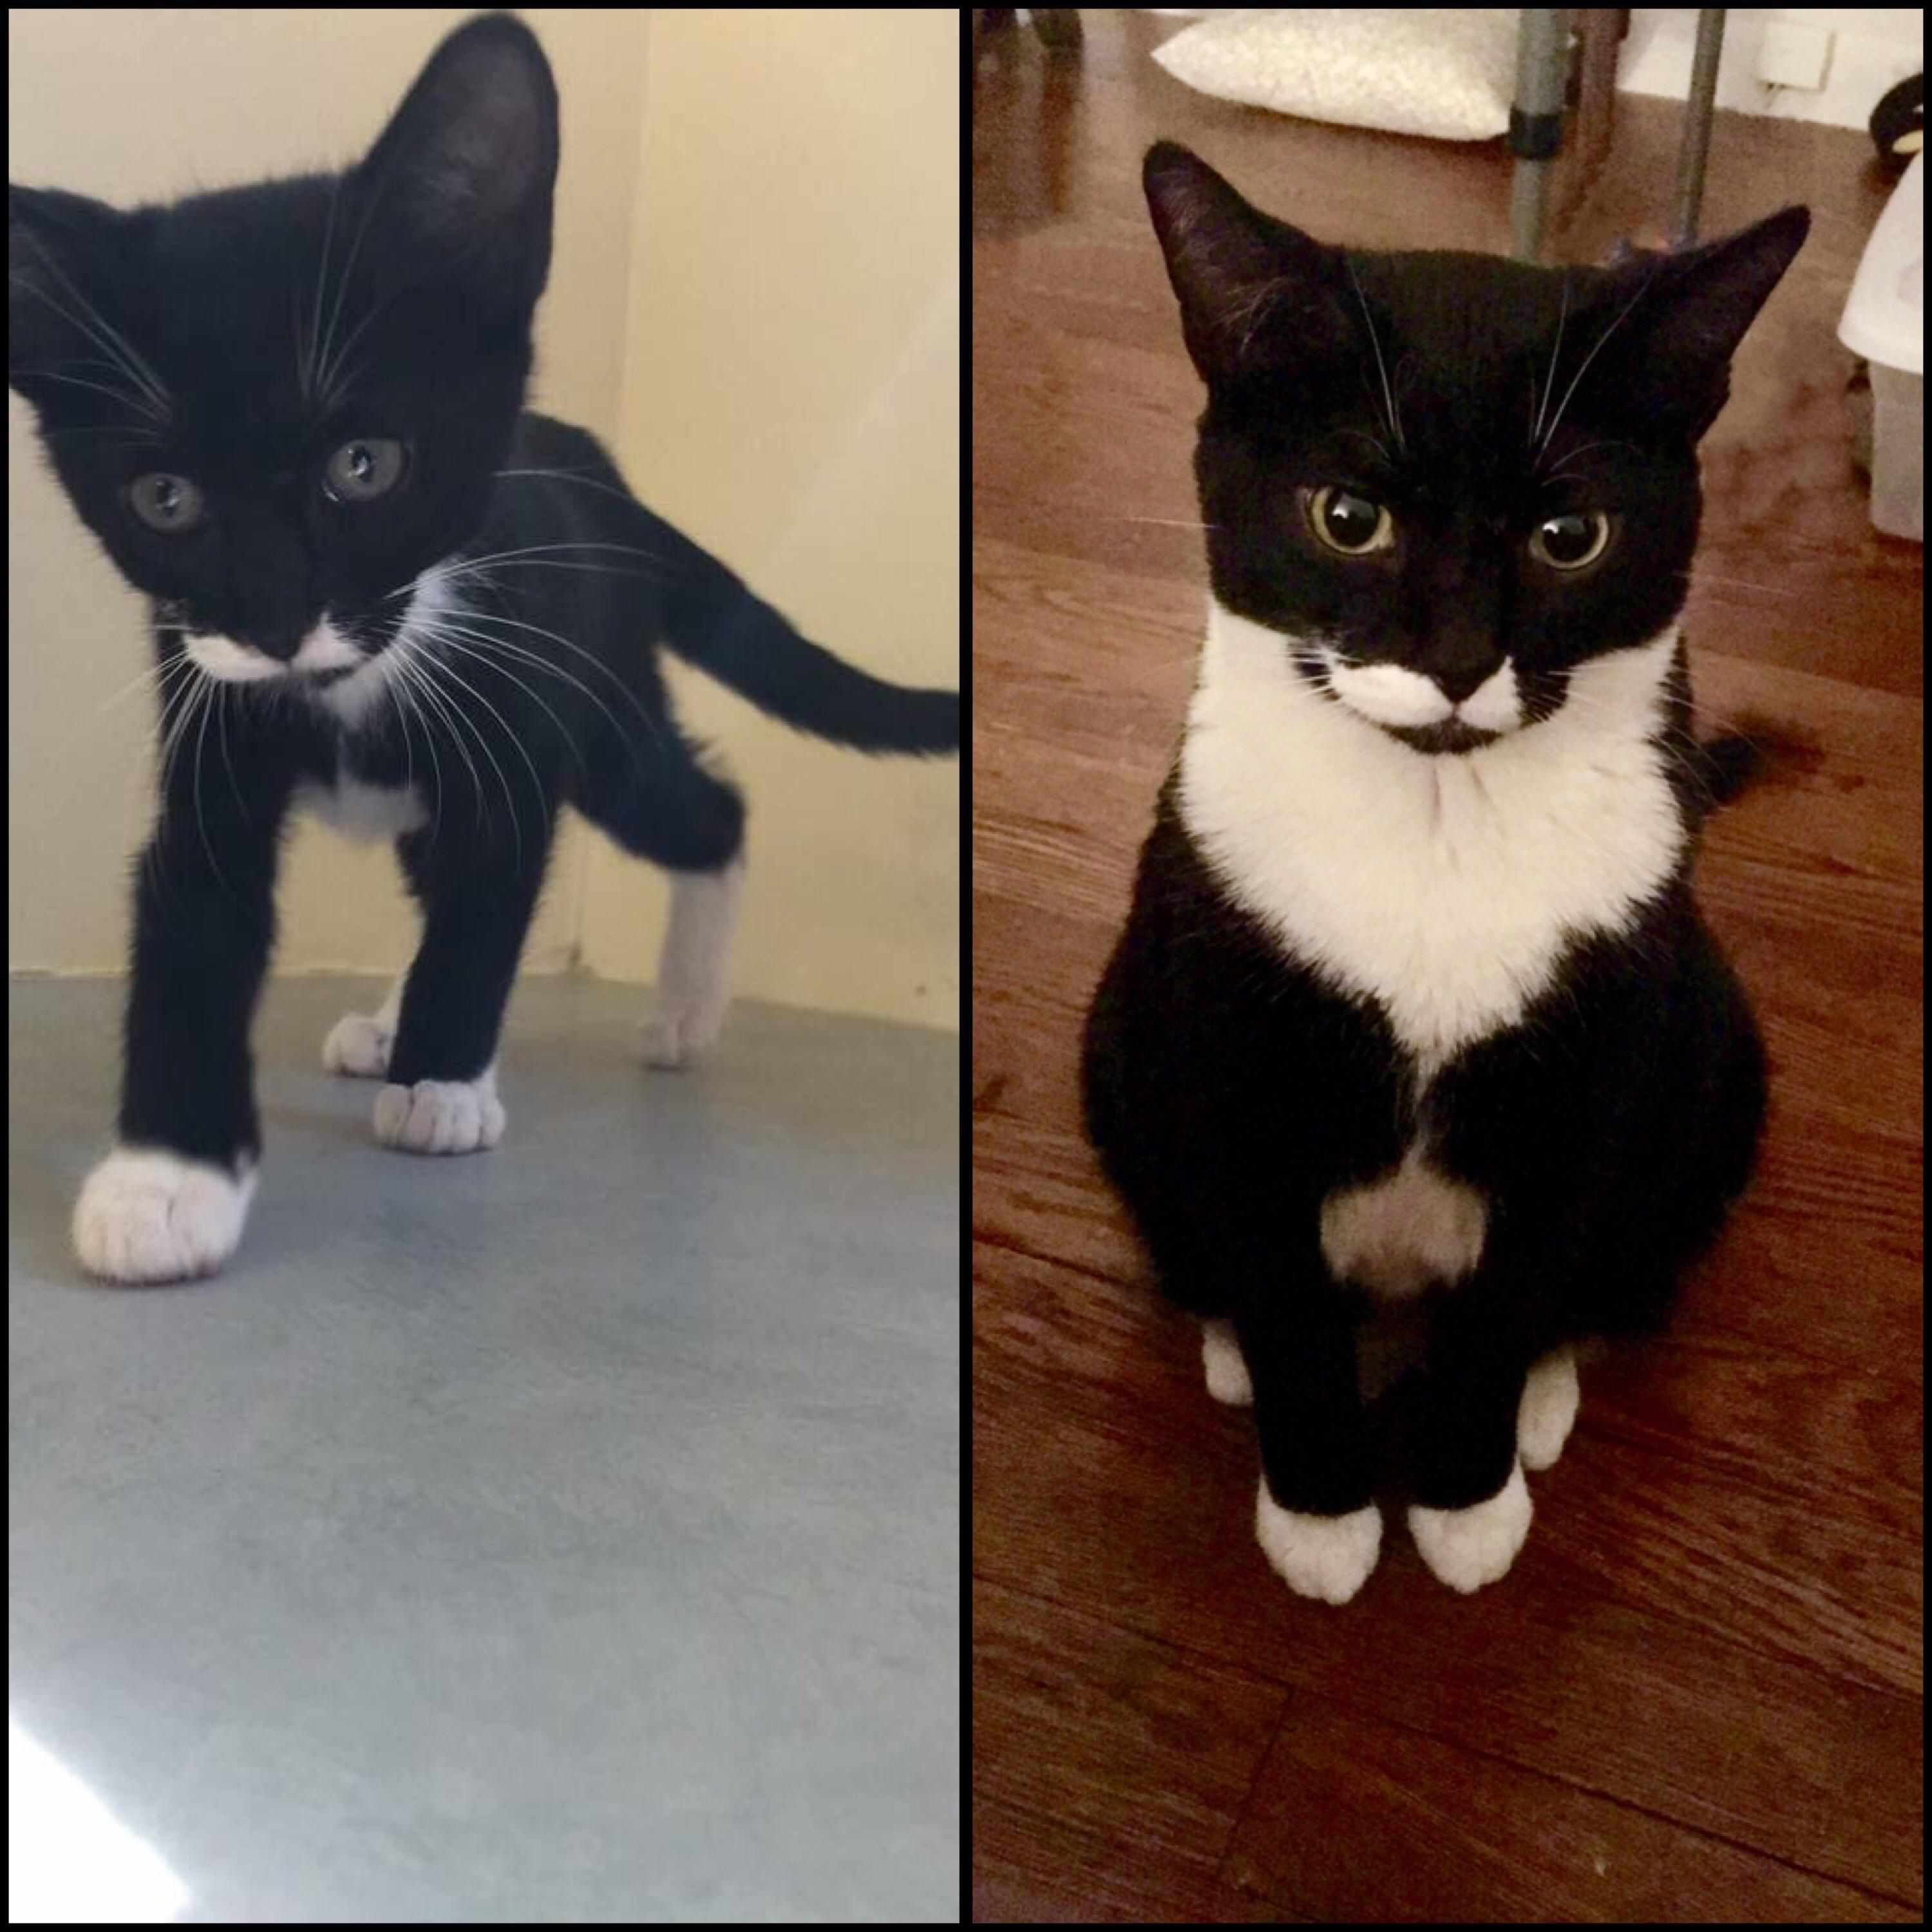 Someone Said You Might Like To Meet Batman Here He Is 8 Weeks Vs 3 Years Old Cat Having Kittens Bicolor Cat Cat Fleas